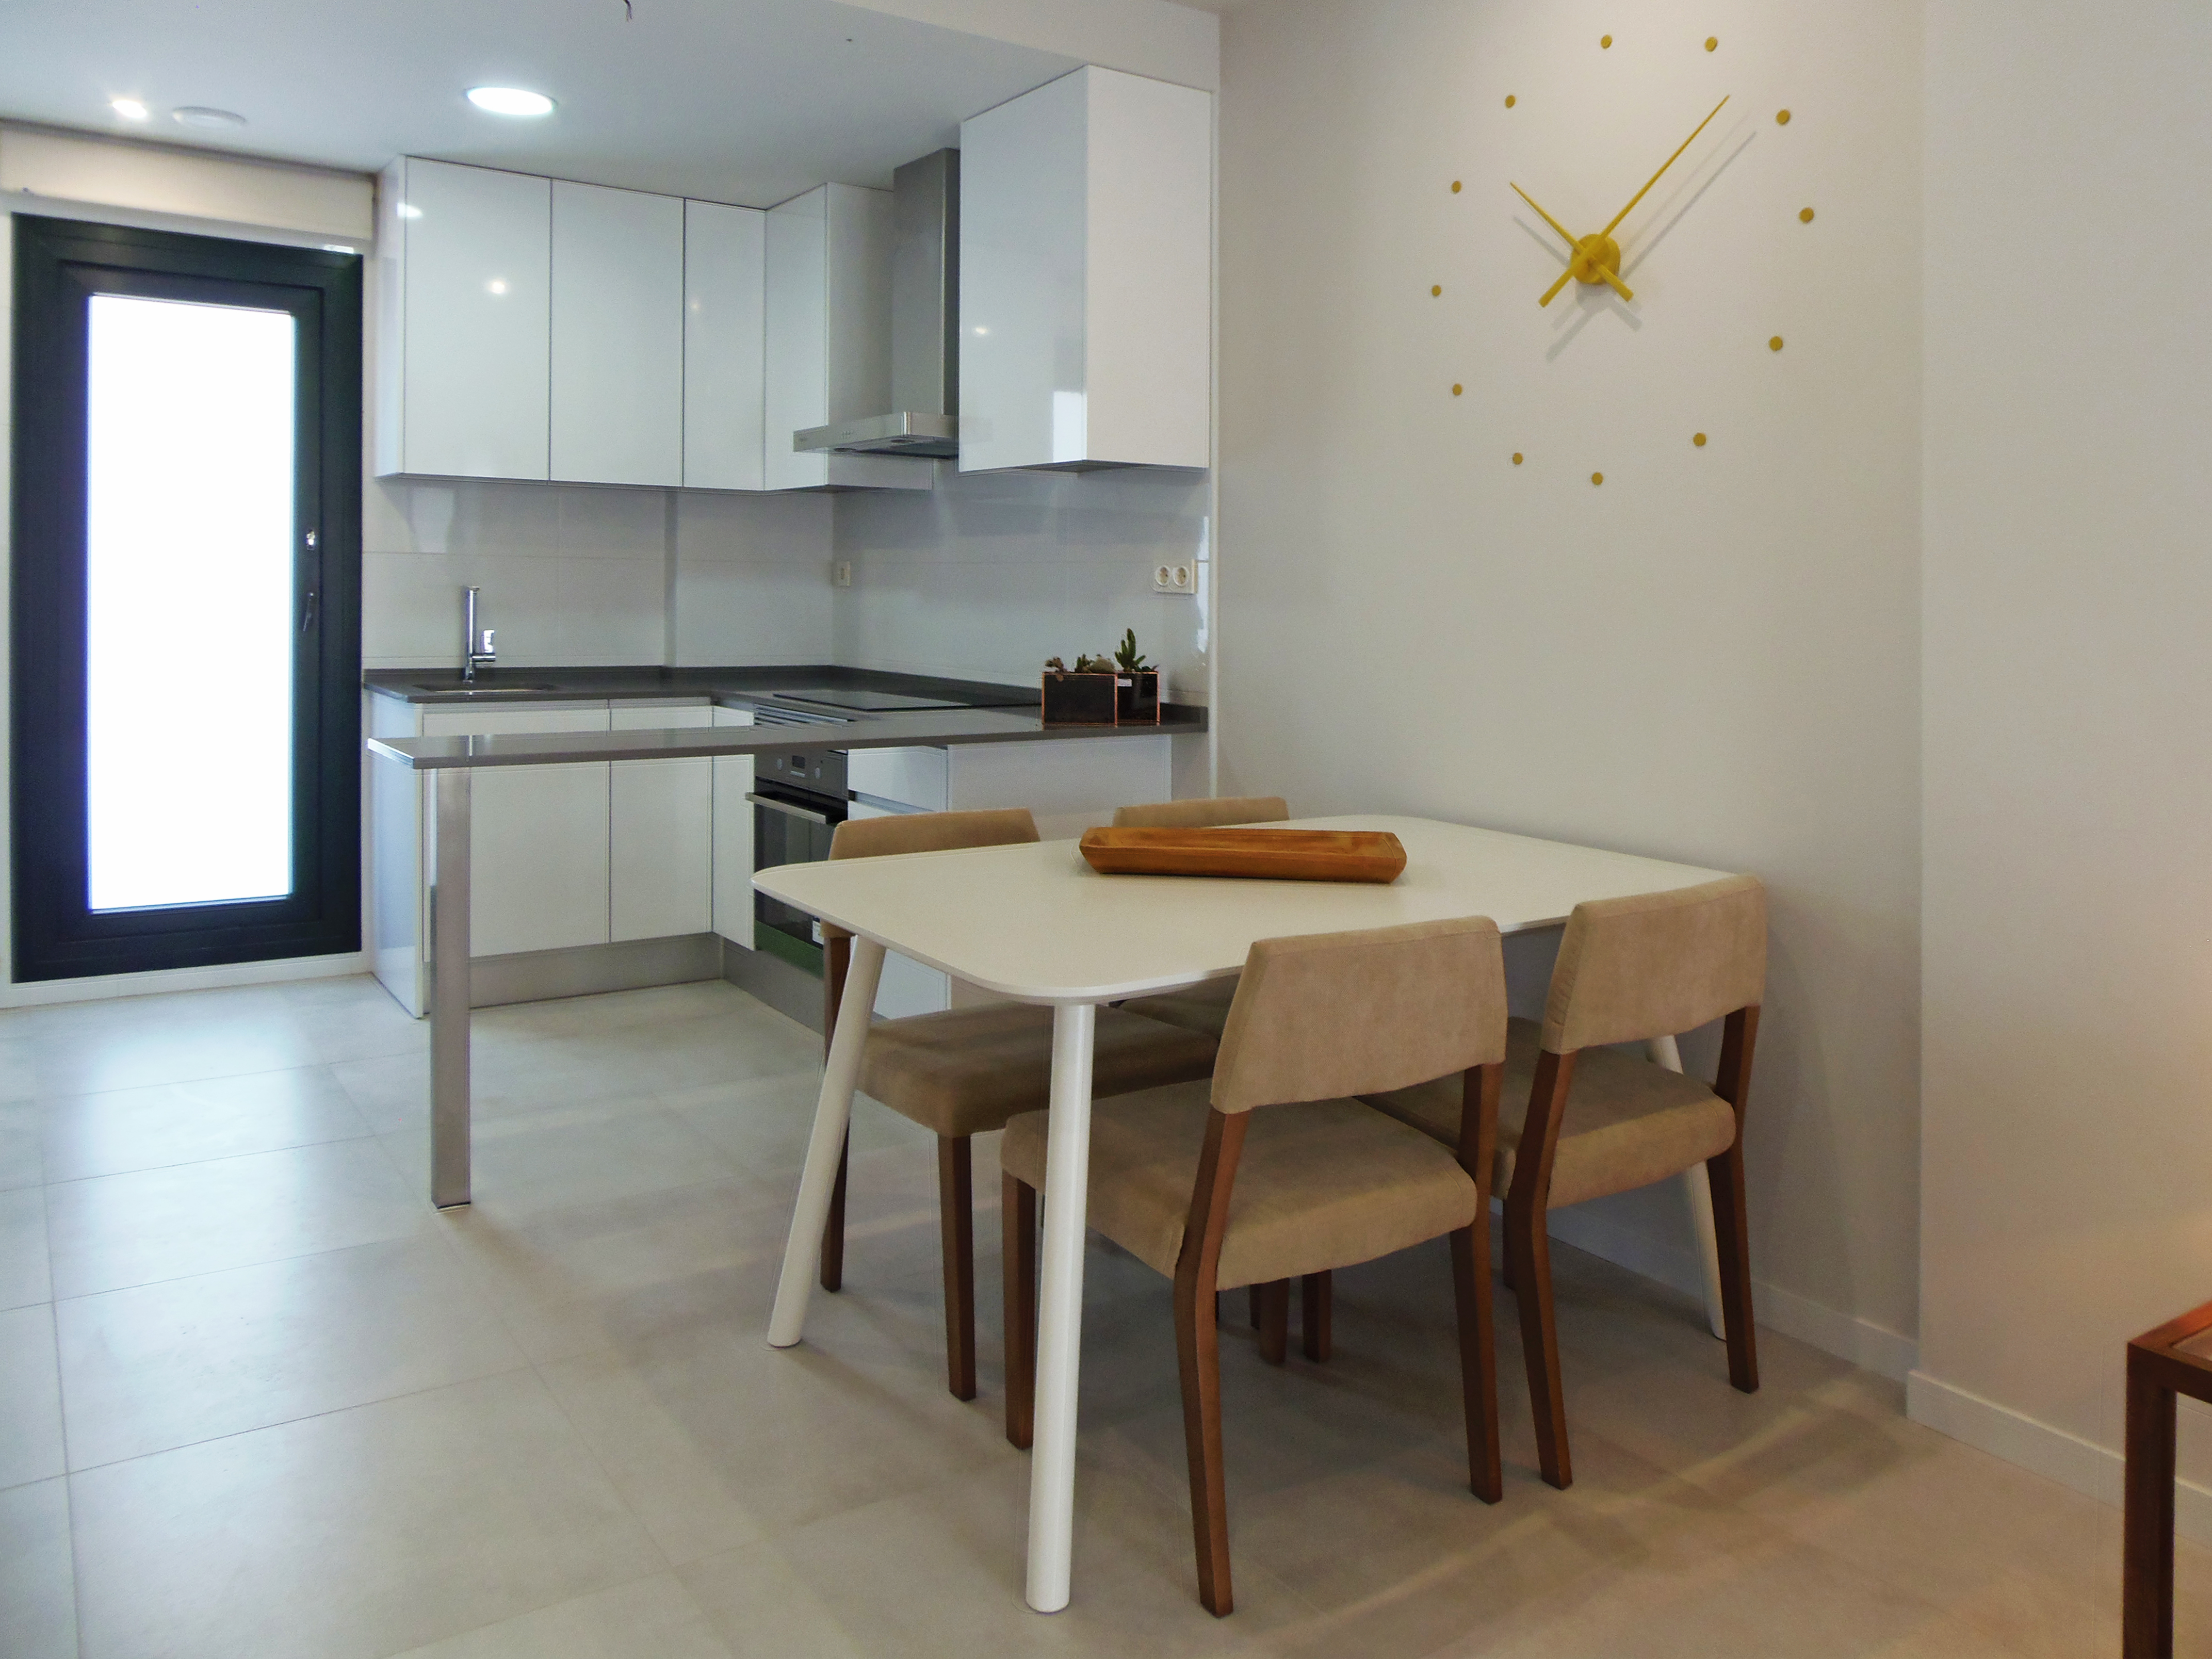 3 bedroom apartment For Sale in Mil Palmeras - photograph 4